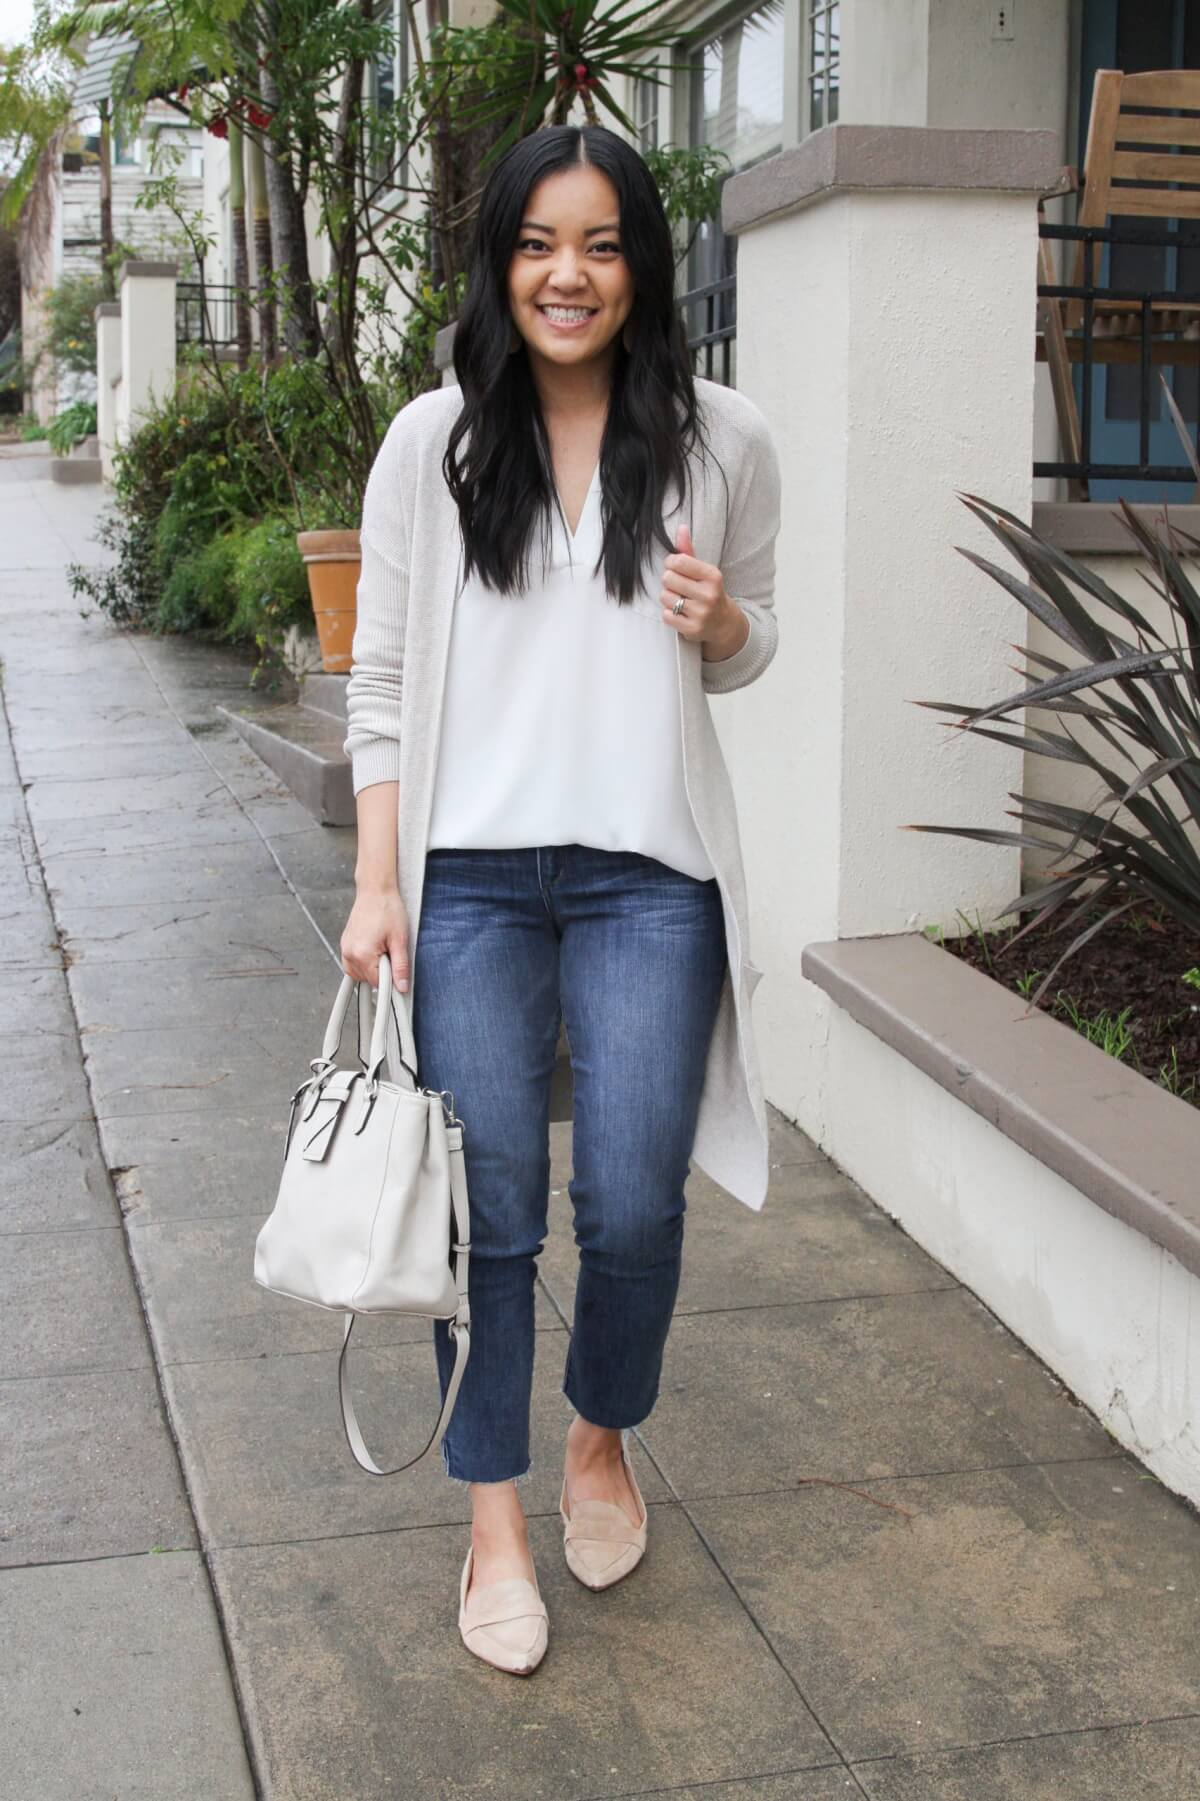 elevated casual outfit for spring: white tunic, light cardigan, jeans, nude flats, white bag